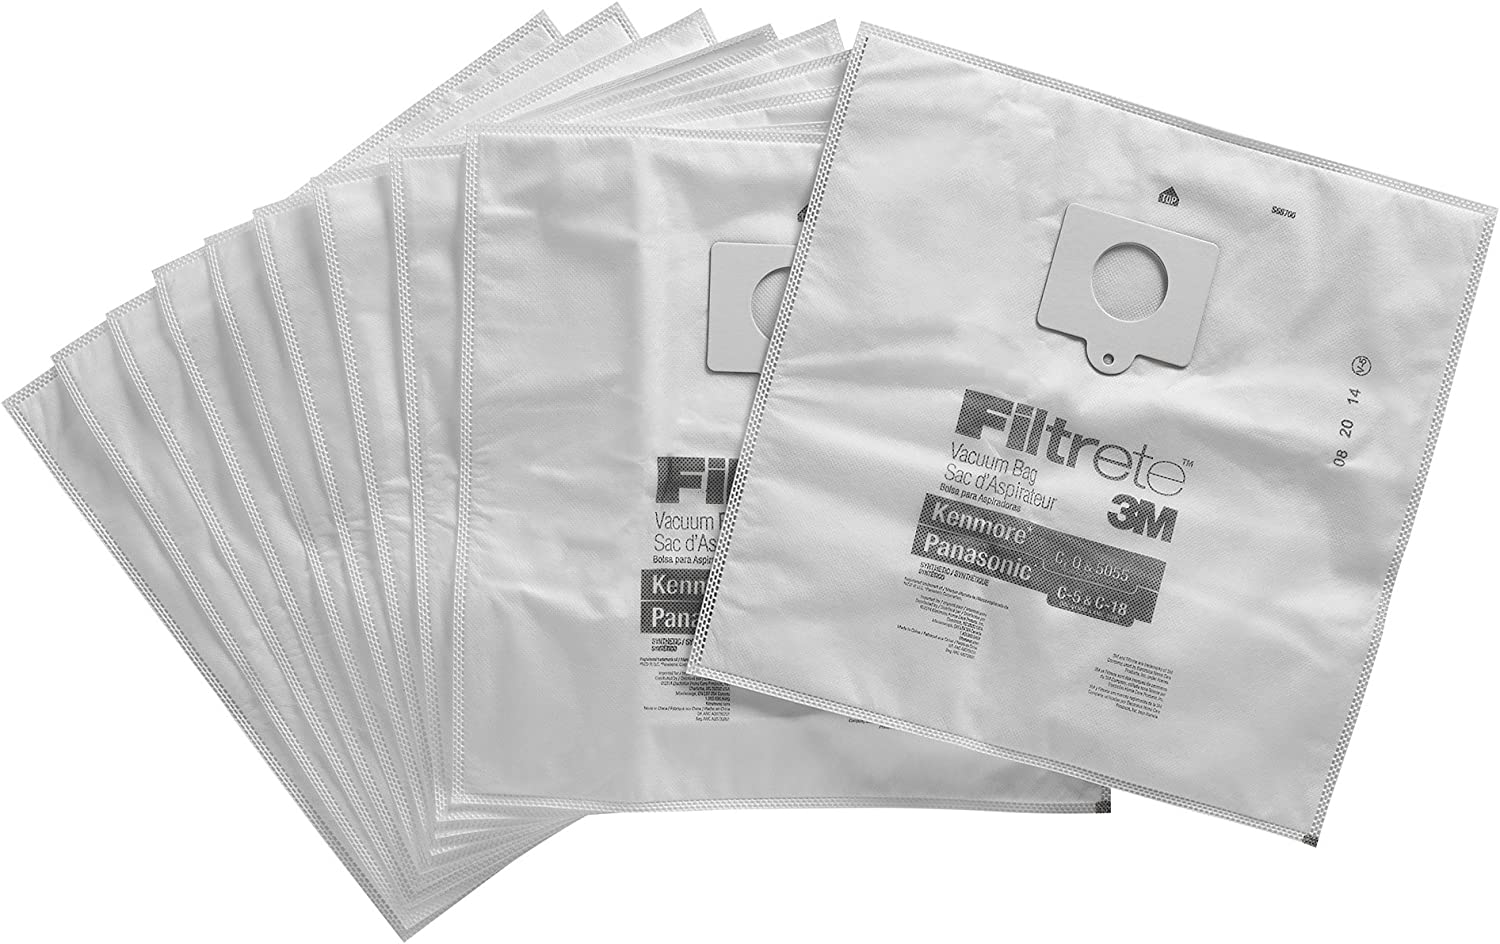 Filtrete 3M Kenmore Style C, Q & 5055 / Panasonic Style C-5 & C-18 Micro Allergen Synthetic Bag 10 Pack